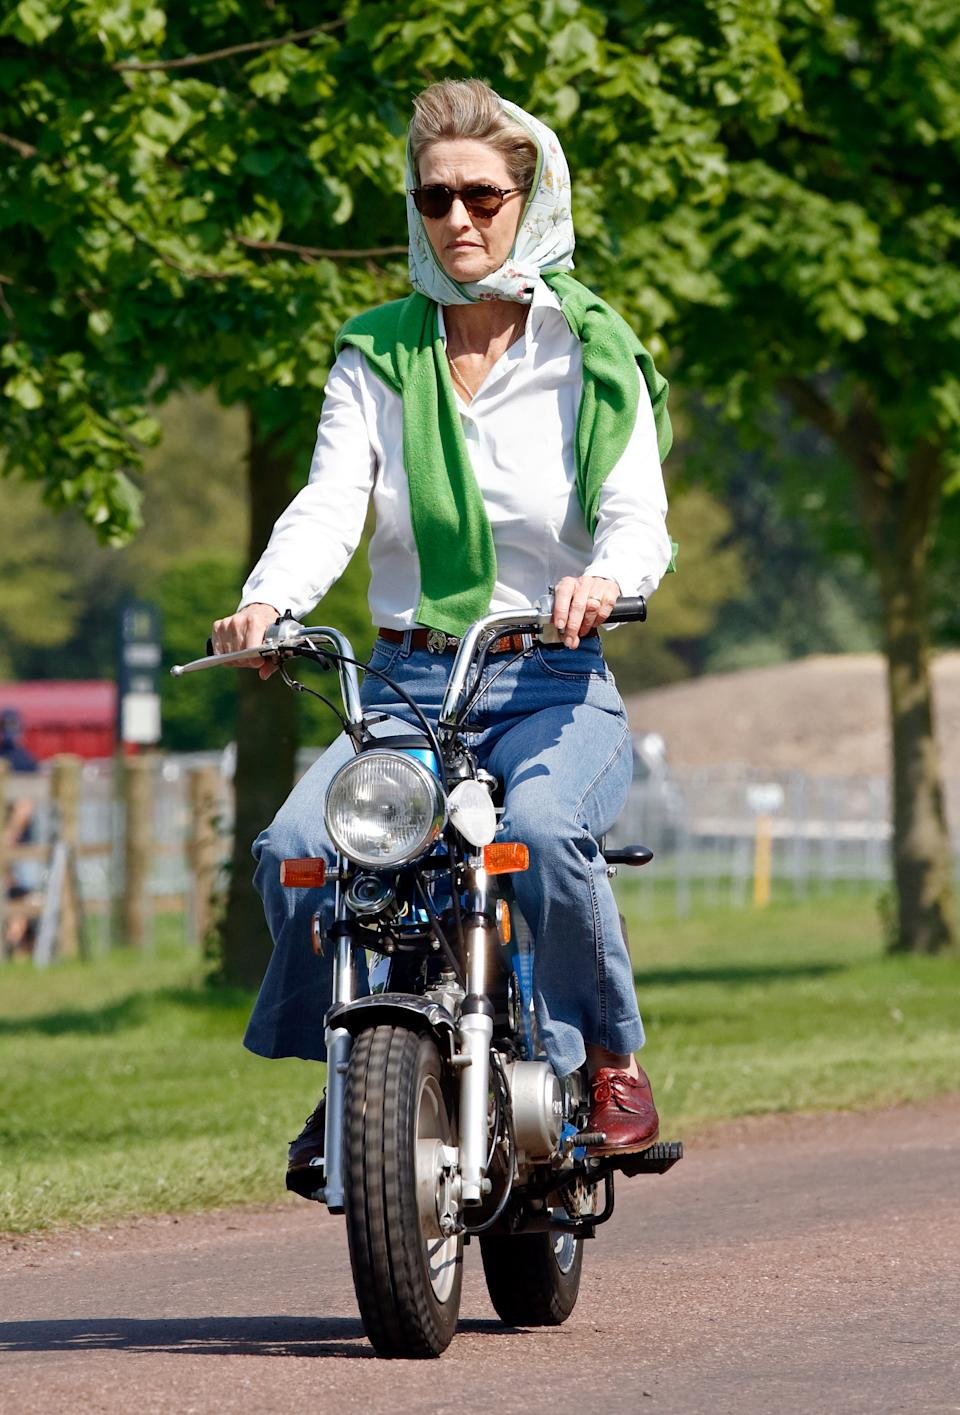 WINDSOR, UNITED KINGDOM - MAY 11: (EMBARGOED FOR PUBLICATION IN UK NEWSPAPERS UNTIL 24 HOURS AFTER CREATE DATE AND TIME) Penelope Knatchbull, Lady Brabourne seen riding a mini 'Easy-Rider' motorbike as she attends day 1 of the Royal Windsor Horse Show in Home Park on May 11, 2006 in Windsor, England. (Photo by Max Mumby/Indigo/Getty Images)